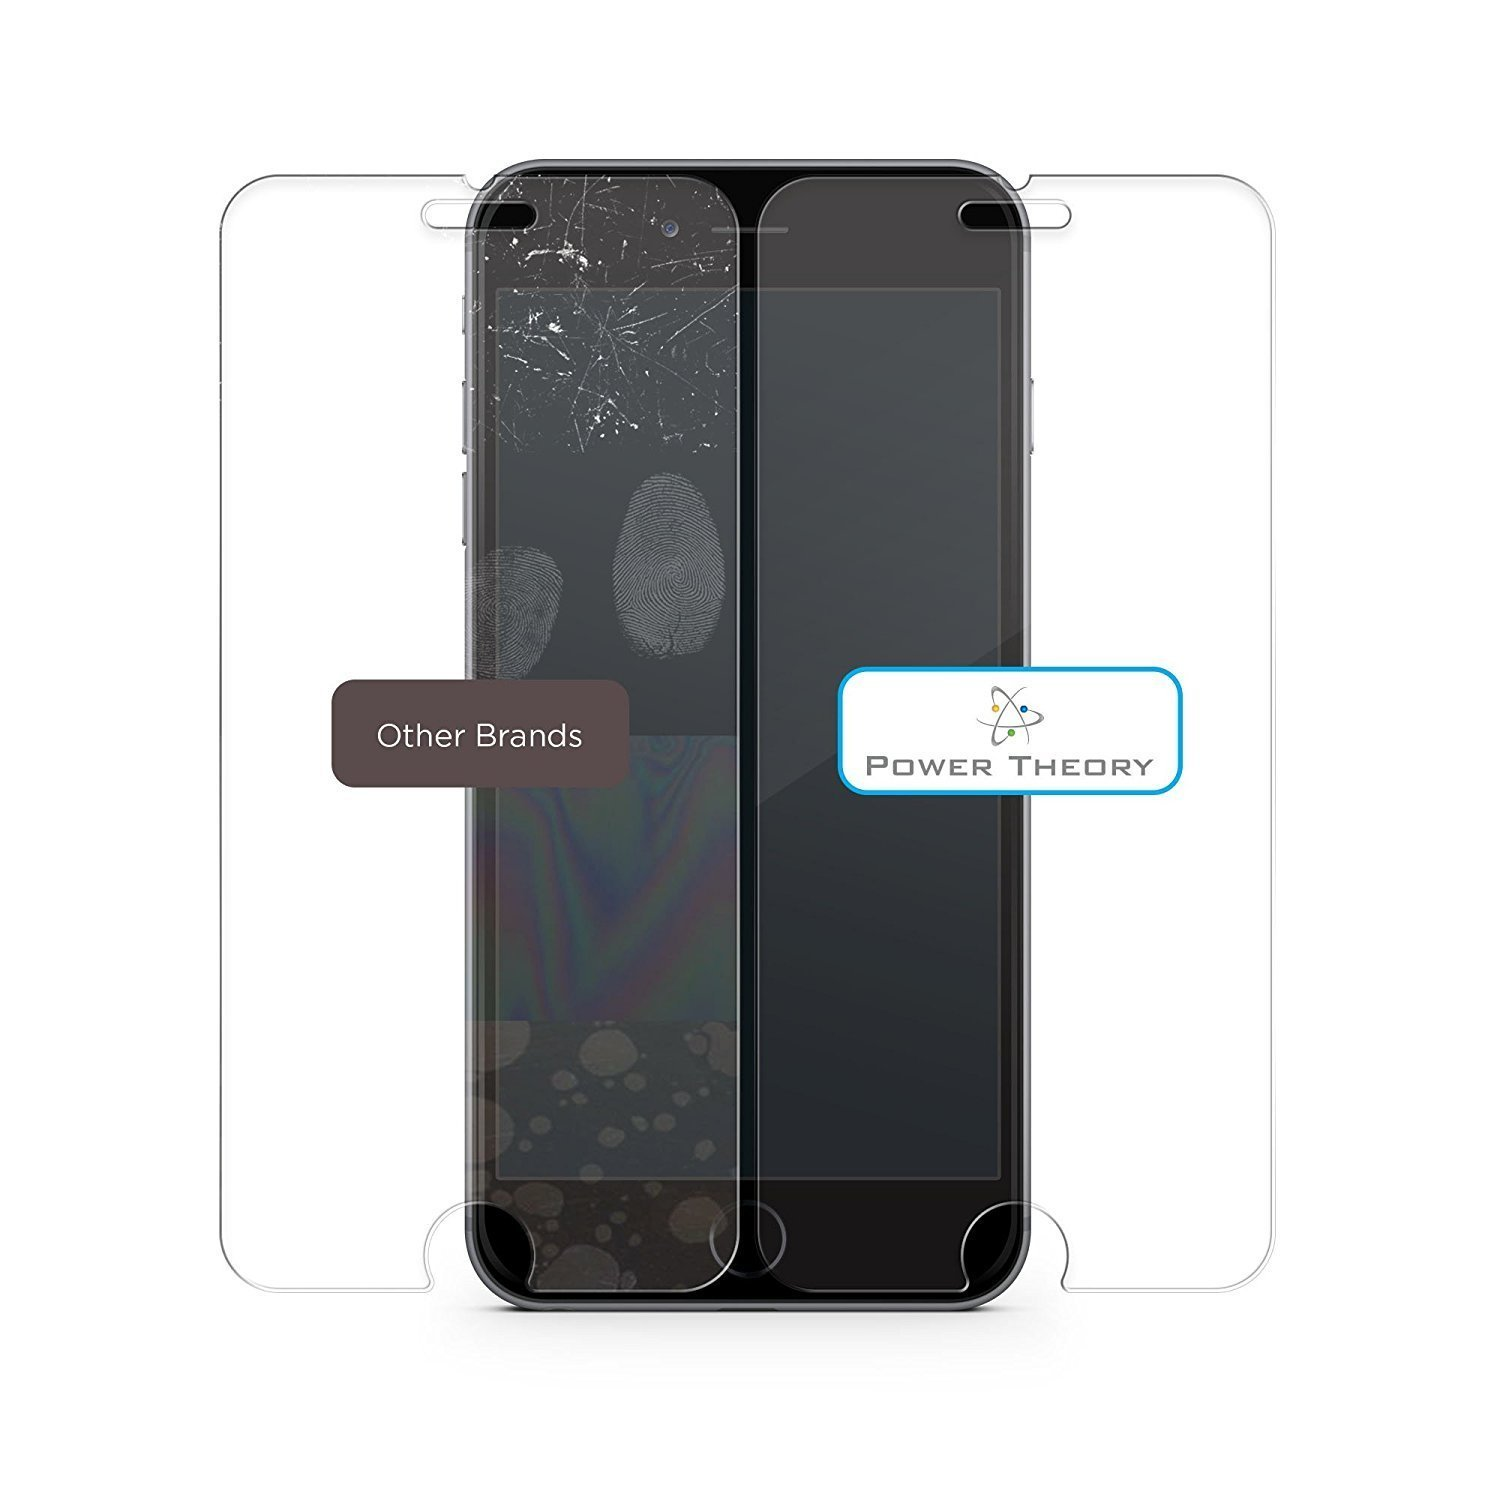 Power Theory iPhone 8 // iPhone 7 Glass Screen Protector Premium Tempered Glass with Easy Install Kit 2-Pack